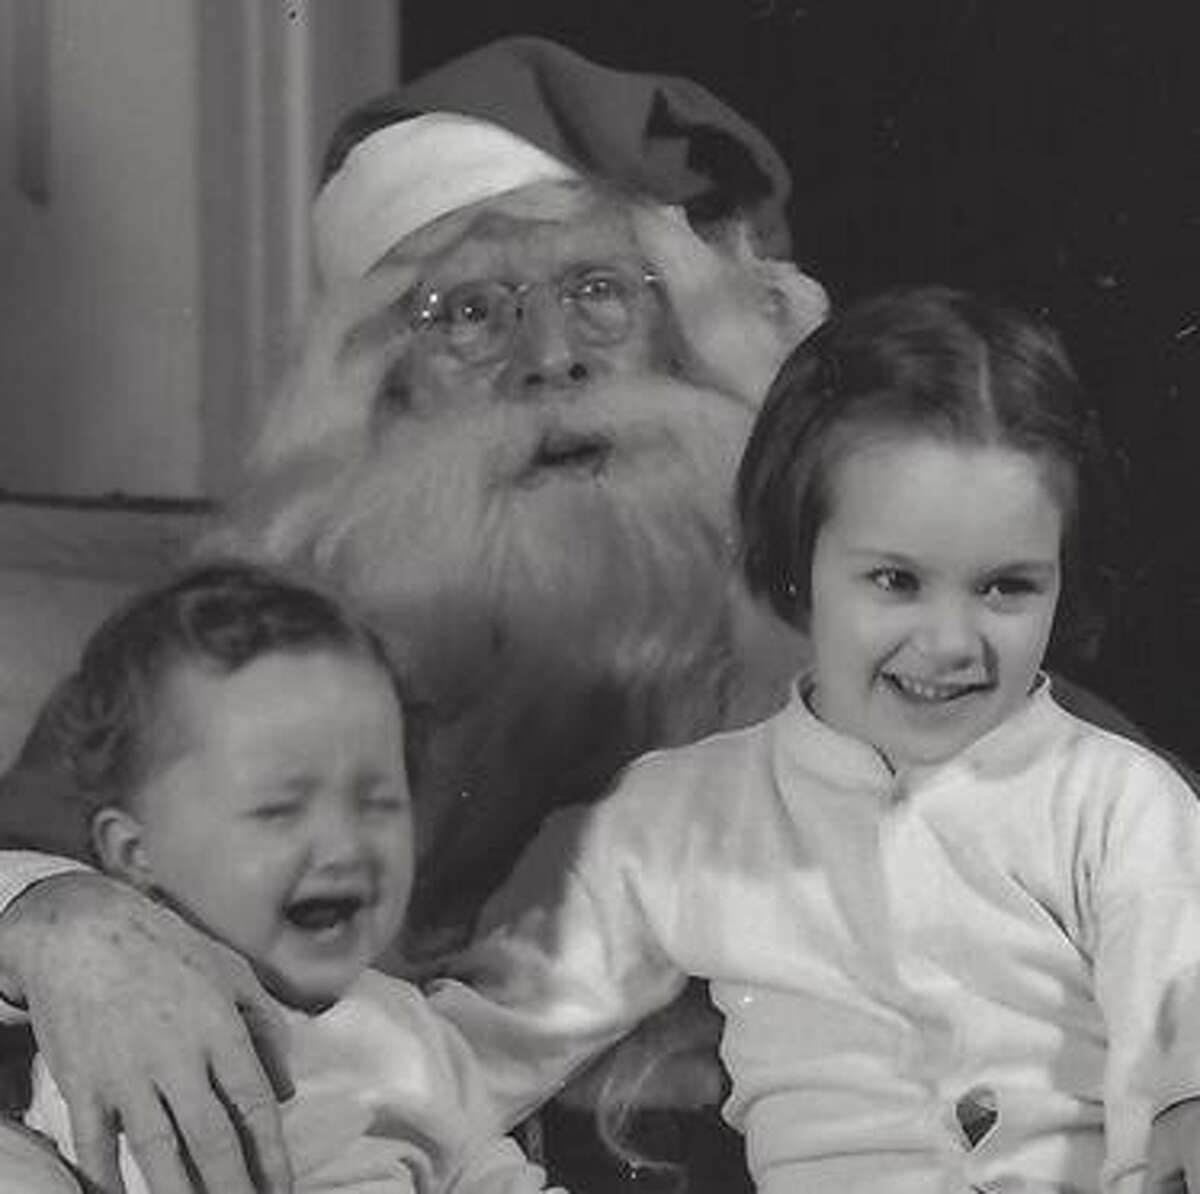 Charley Ashbee played Santa Claus to children in Rigefield for three decades, from the Great Depression into the start of 1960s.